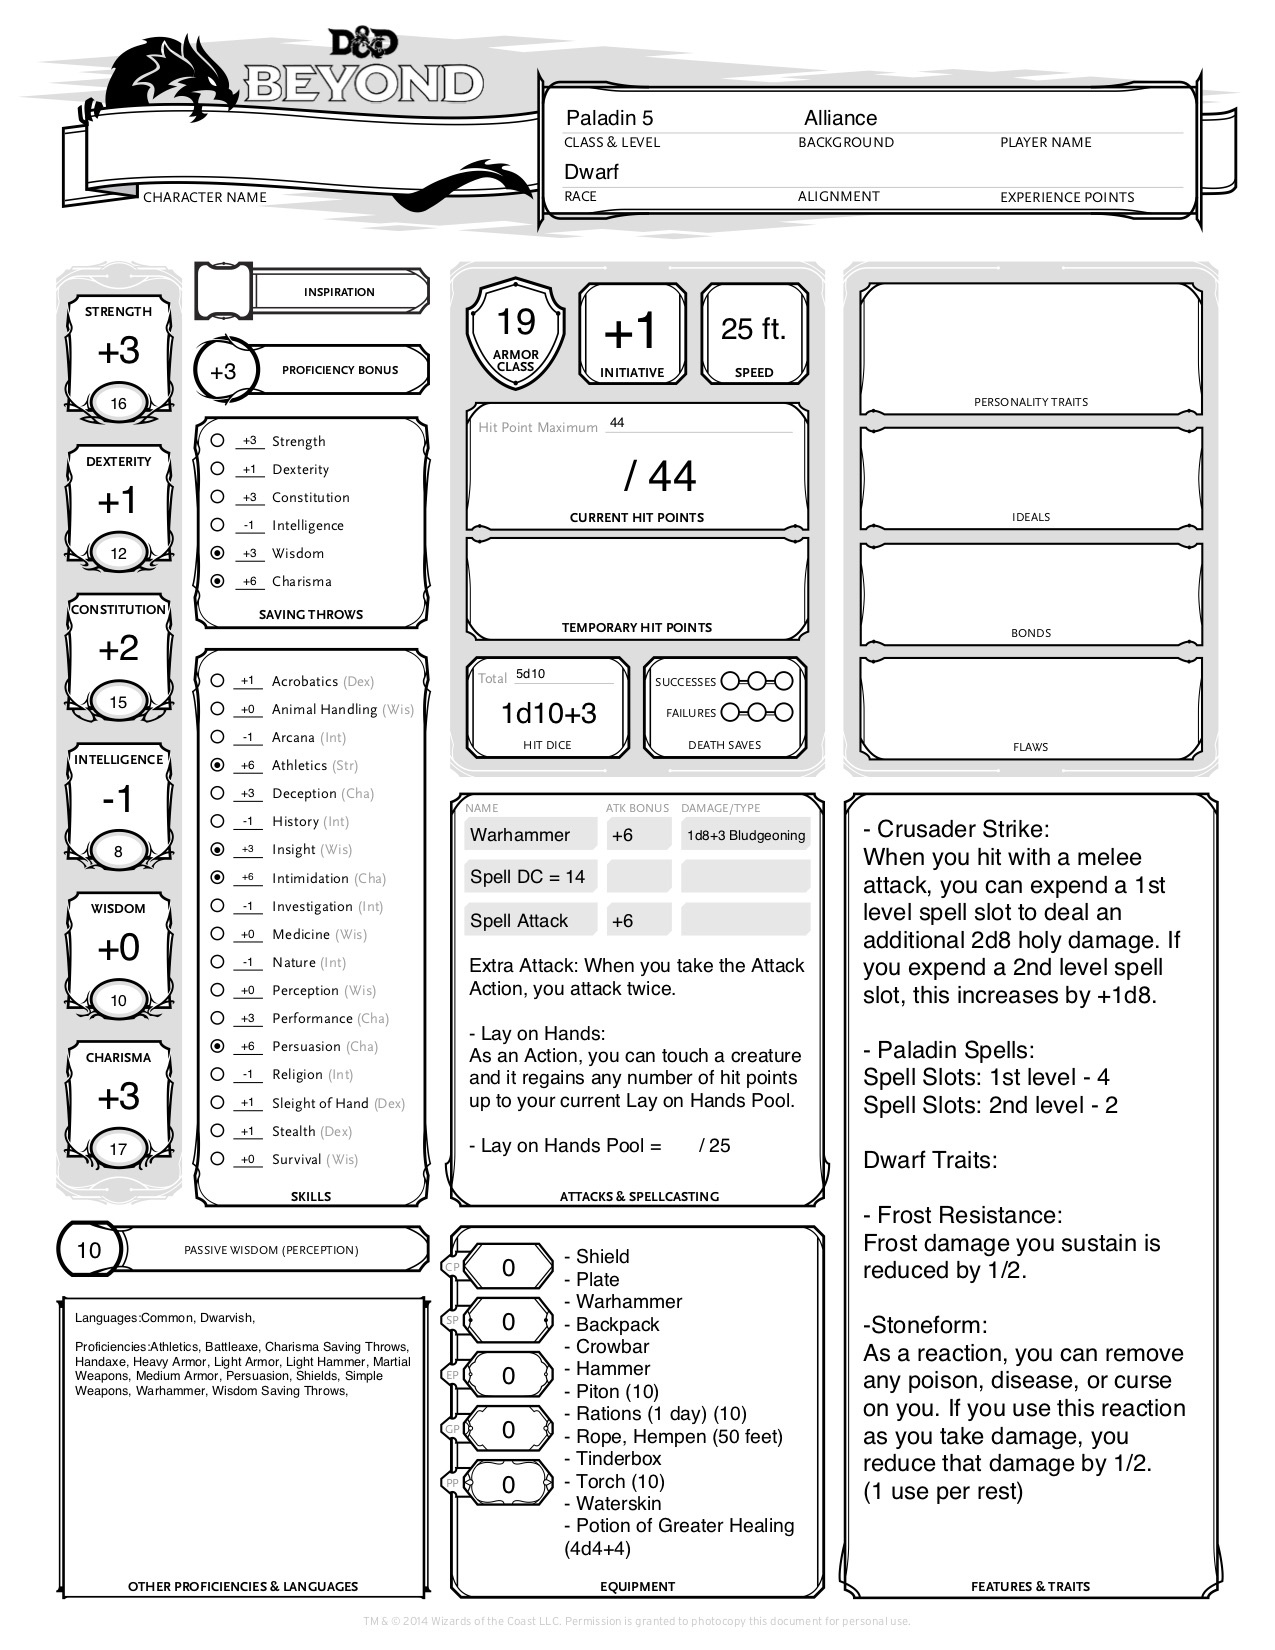 photo relating to Dungeons and Dragons Printable Character Sheet referred to as Matthew Mercers DD Persona Sheets for WoW Cles